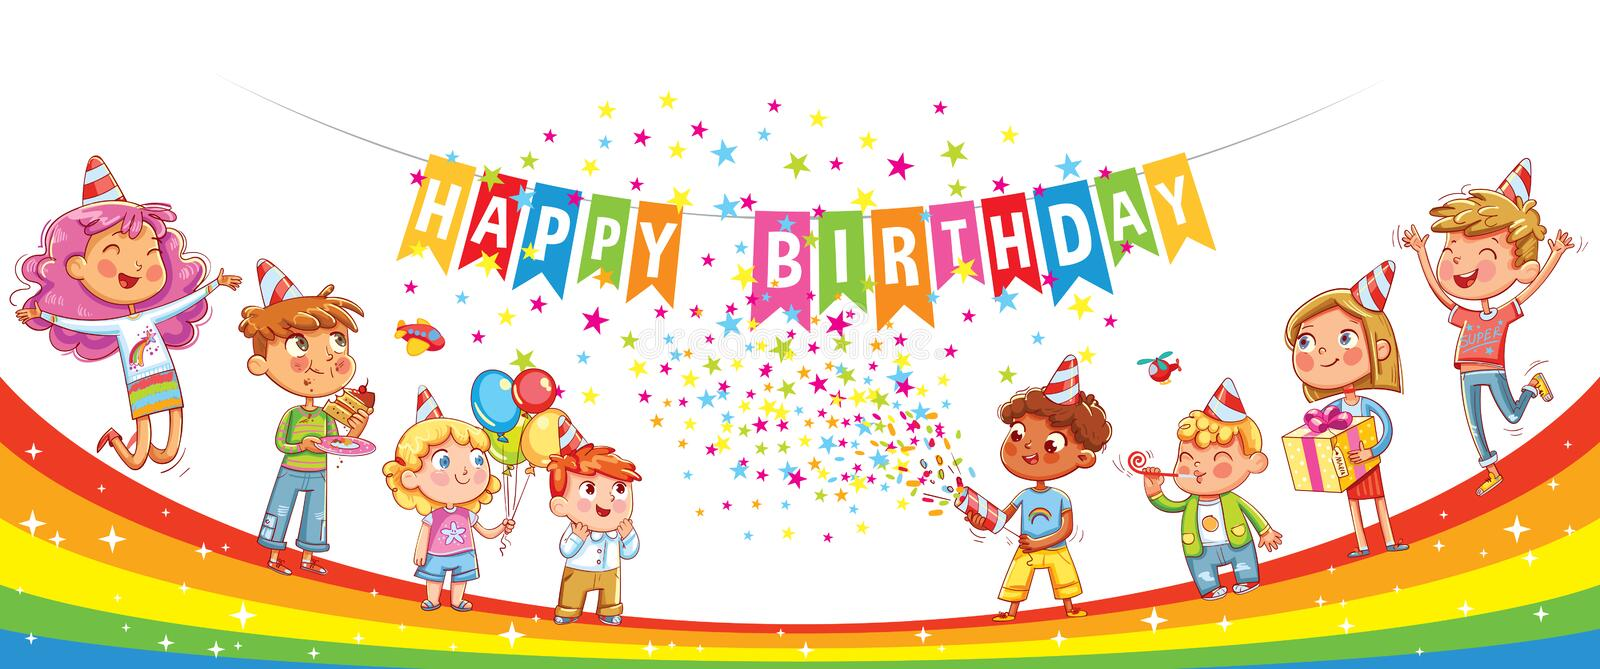 Happy Birthday. Kids celebrating with gift, cake confetti and balloons. Jumping have fun. Template for advertising brochure. Ready for your message. Funny royalty free illustration